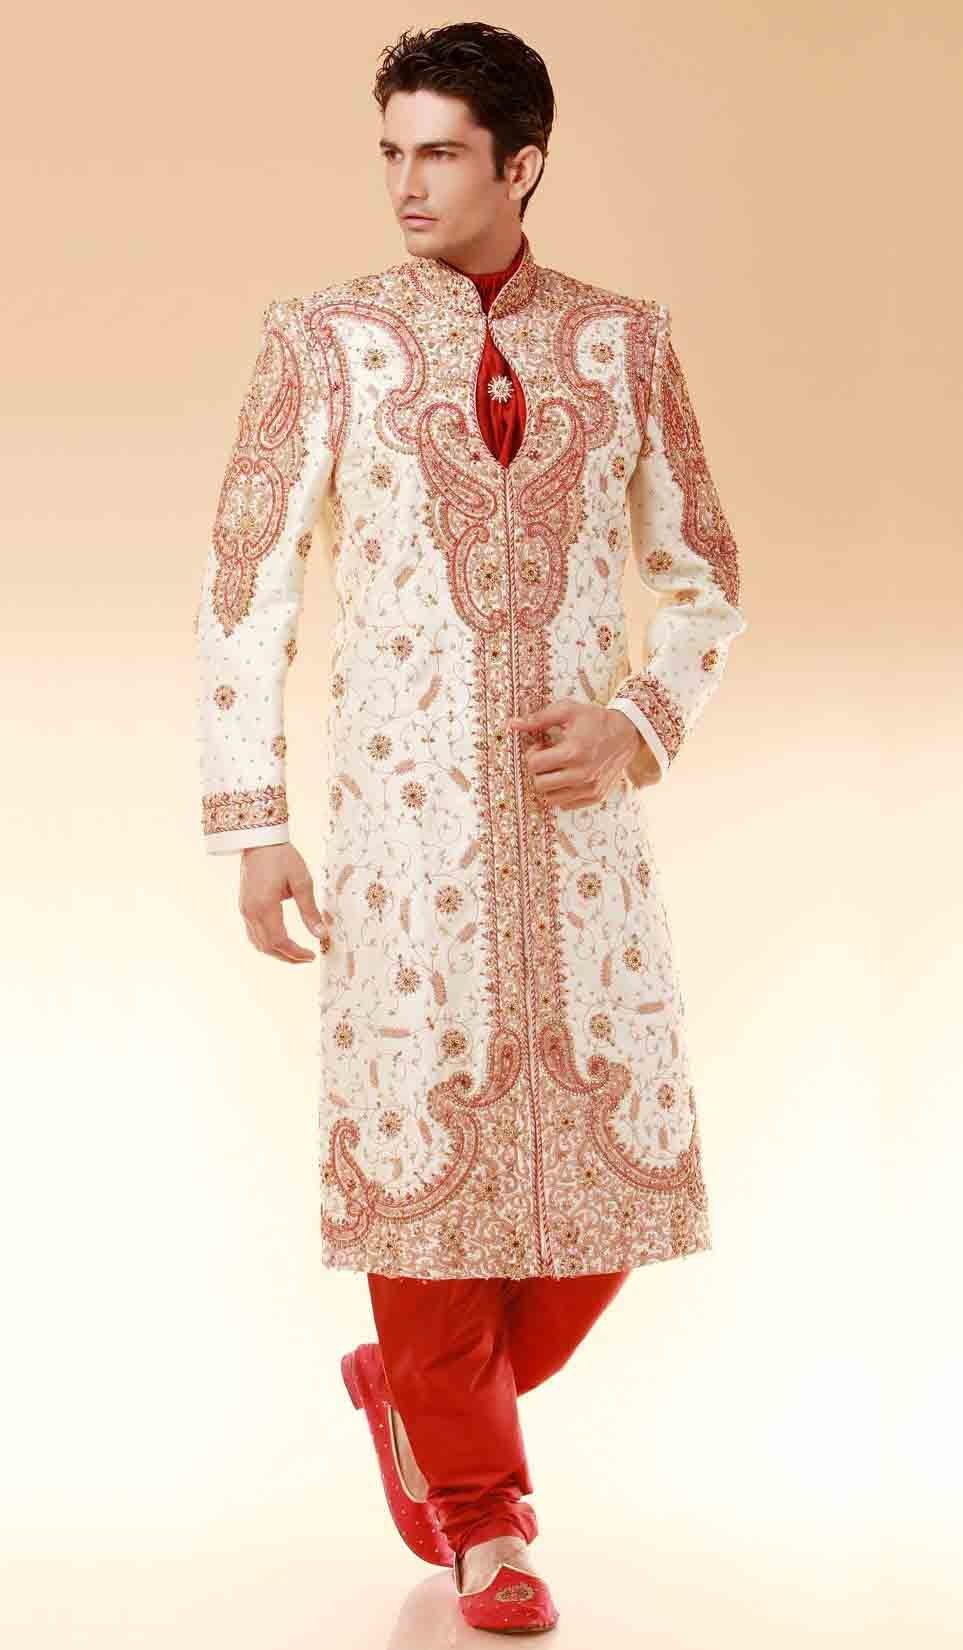 Mens Indian Wedding Fashion